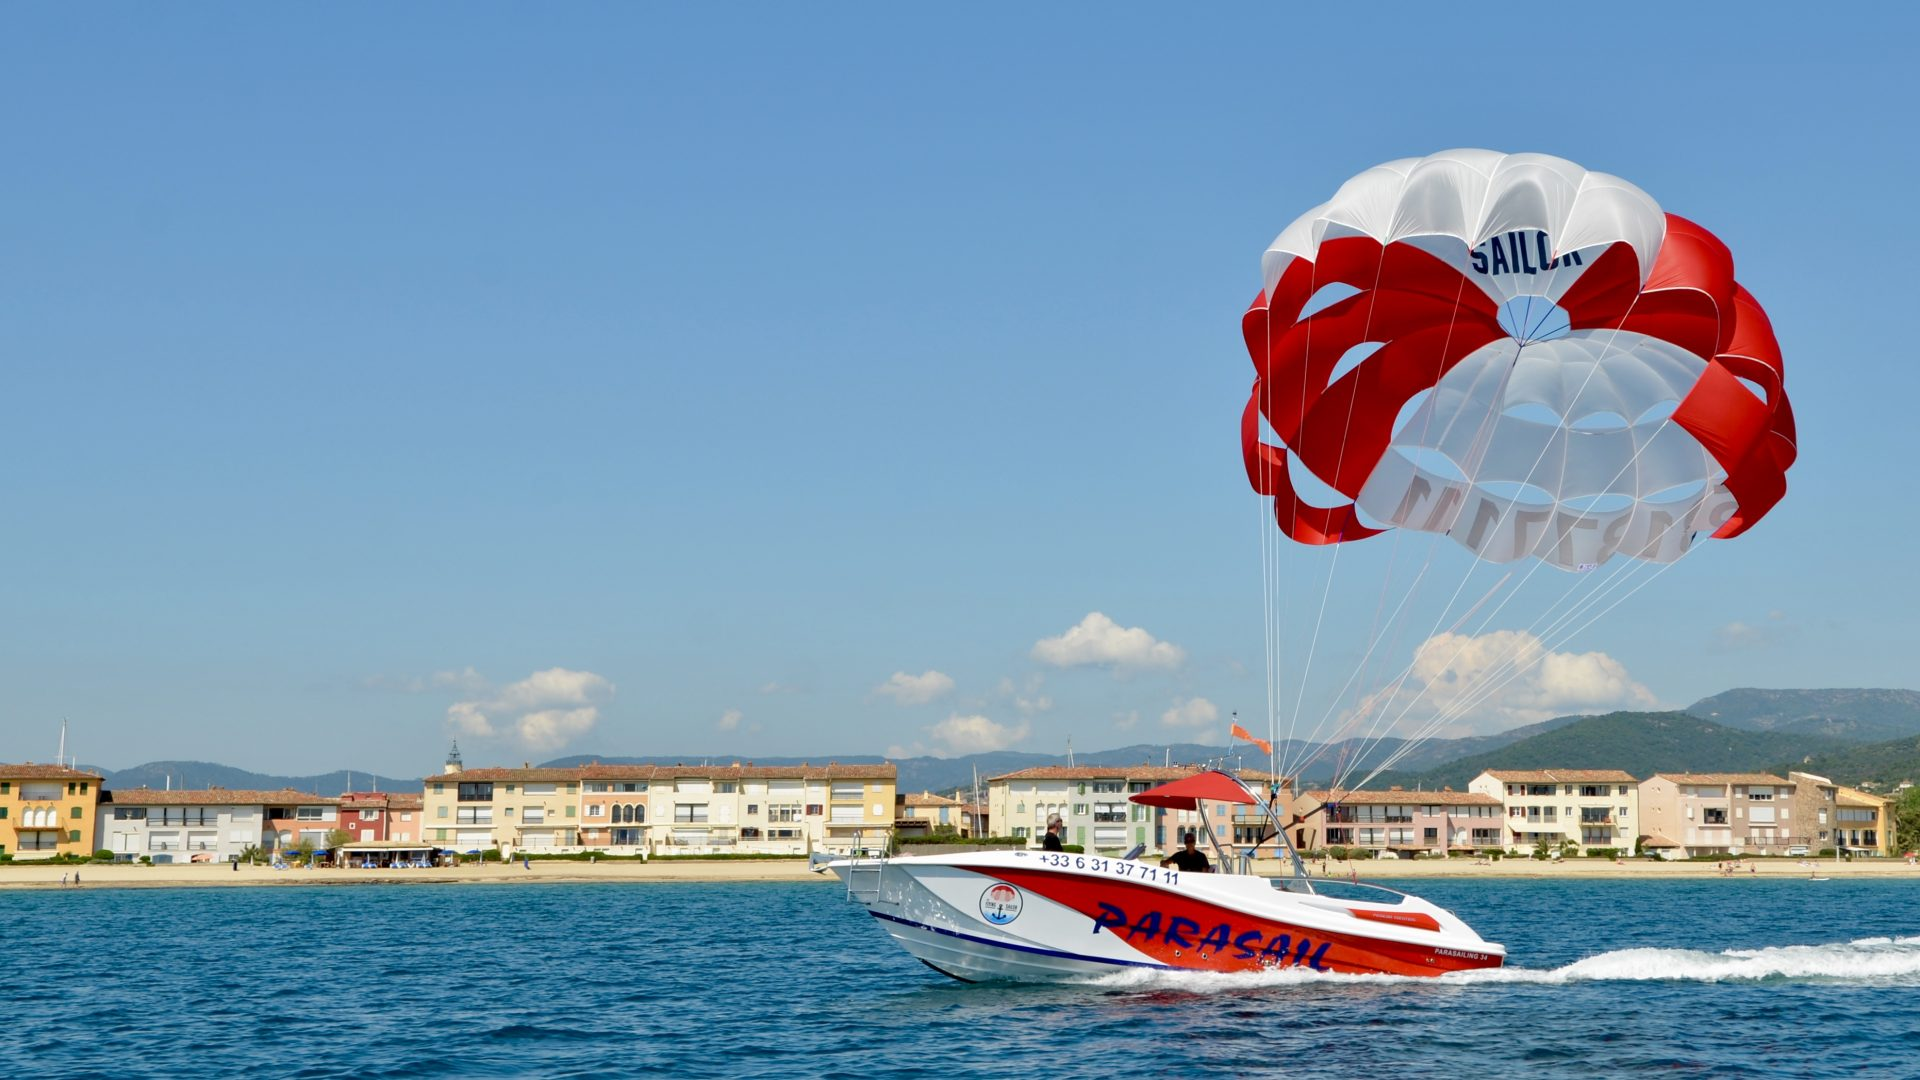 The flying sailor – Parachute ascensionnel Golfe de Saint Tropez